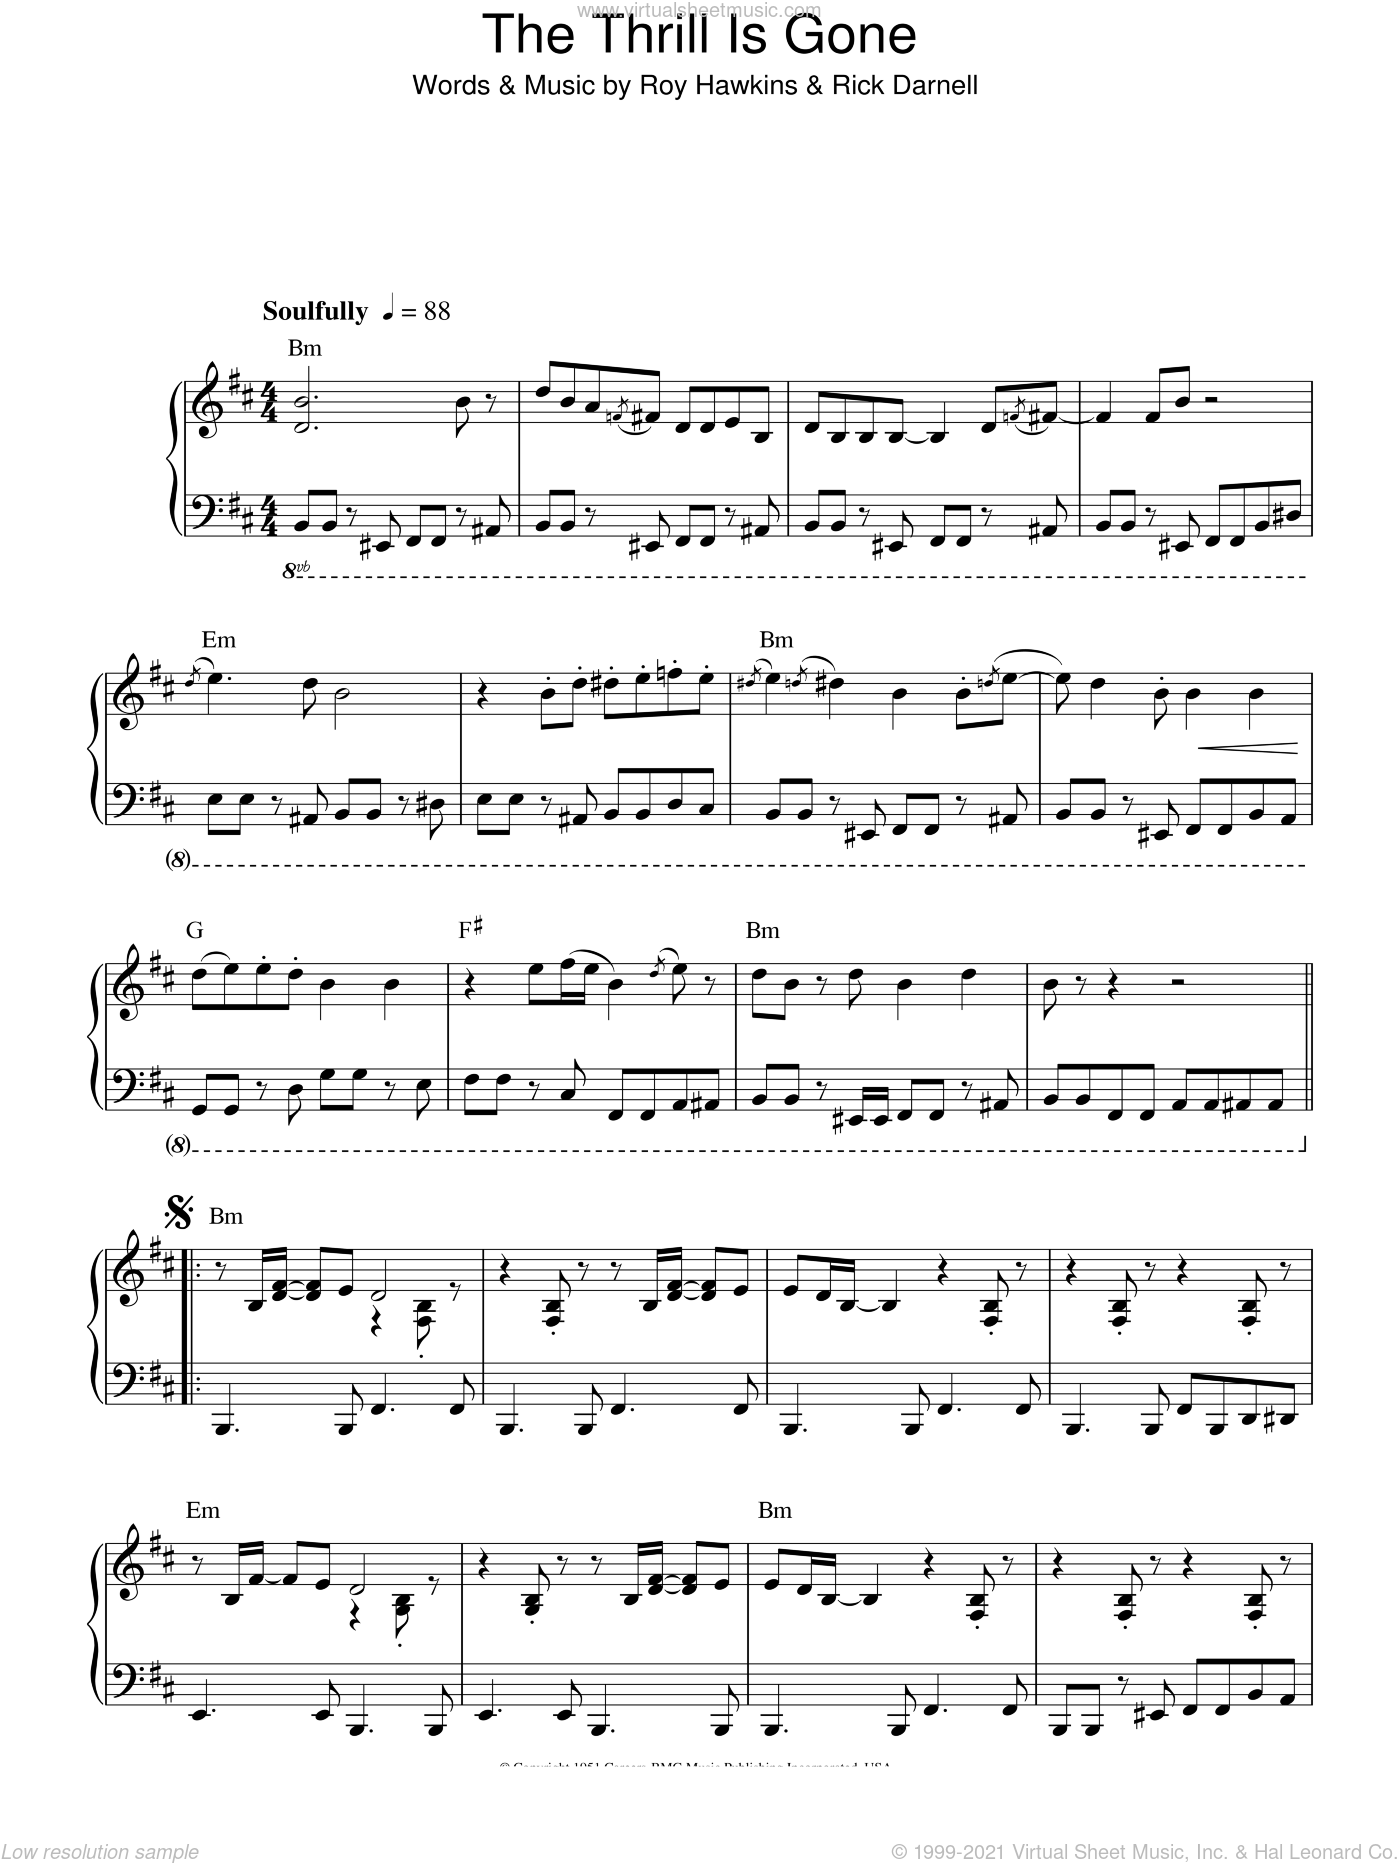 The Thrill Is Gone sheet music for piano solo by Roy Hawkins